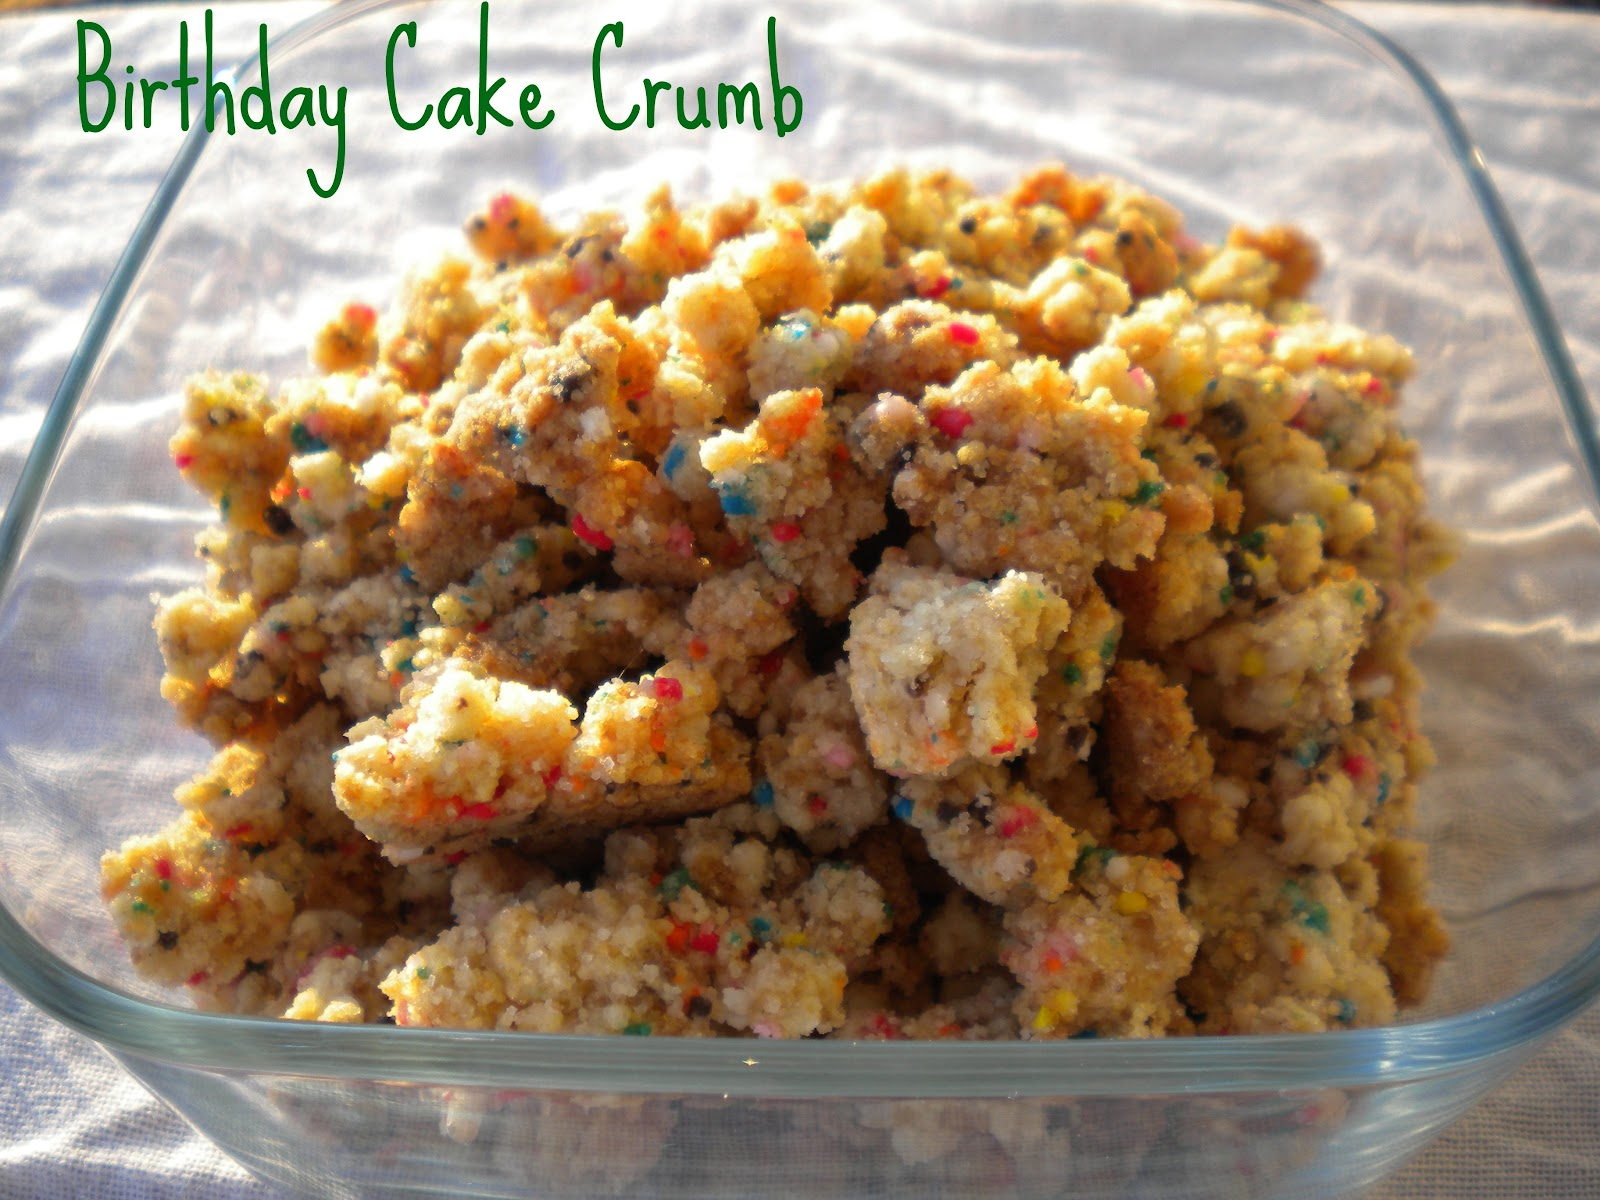 Milk Bar Birthday Cake Crumb